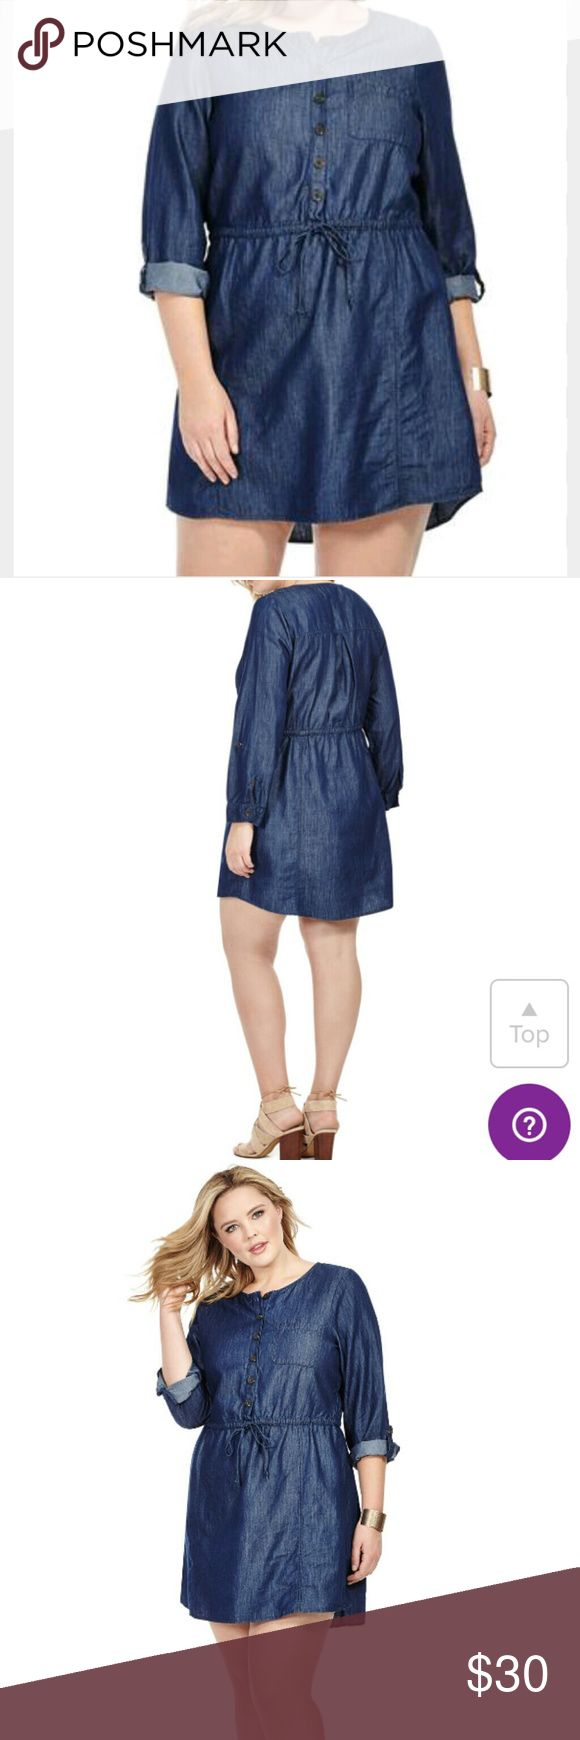 Denim plus size dress Denim plus size dress by BB Daokta with adjustable drawstring waist and adjustable sleeves bundle more and save.Comes with Boutique Sales Tag Only BB Dakota Dresses